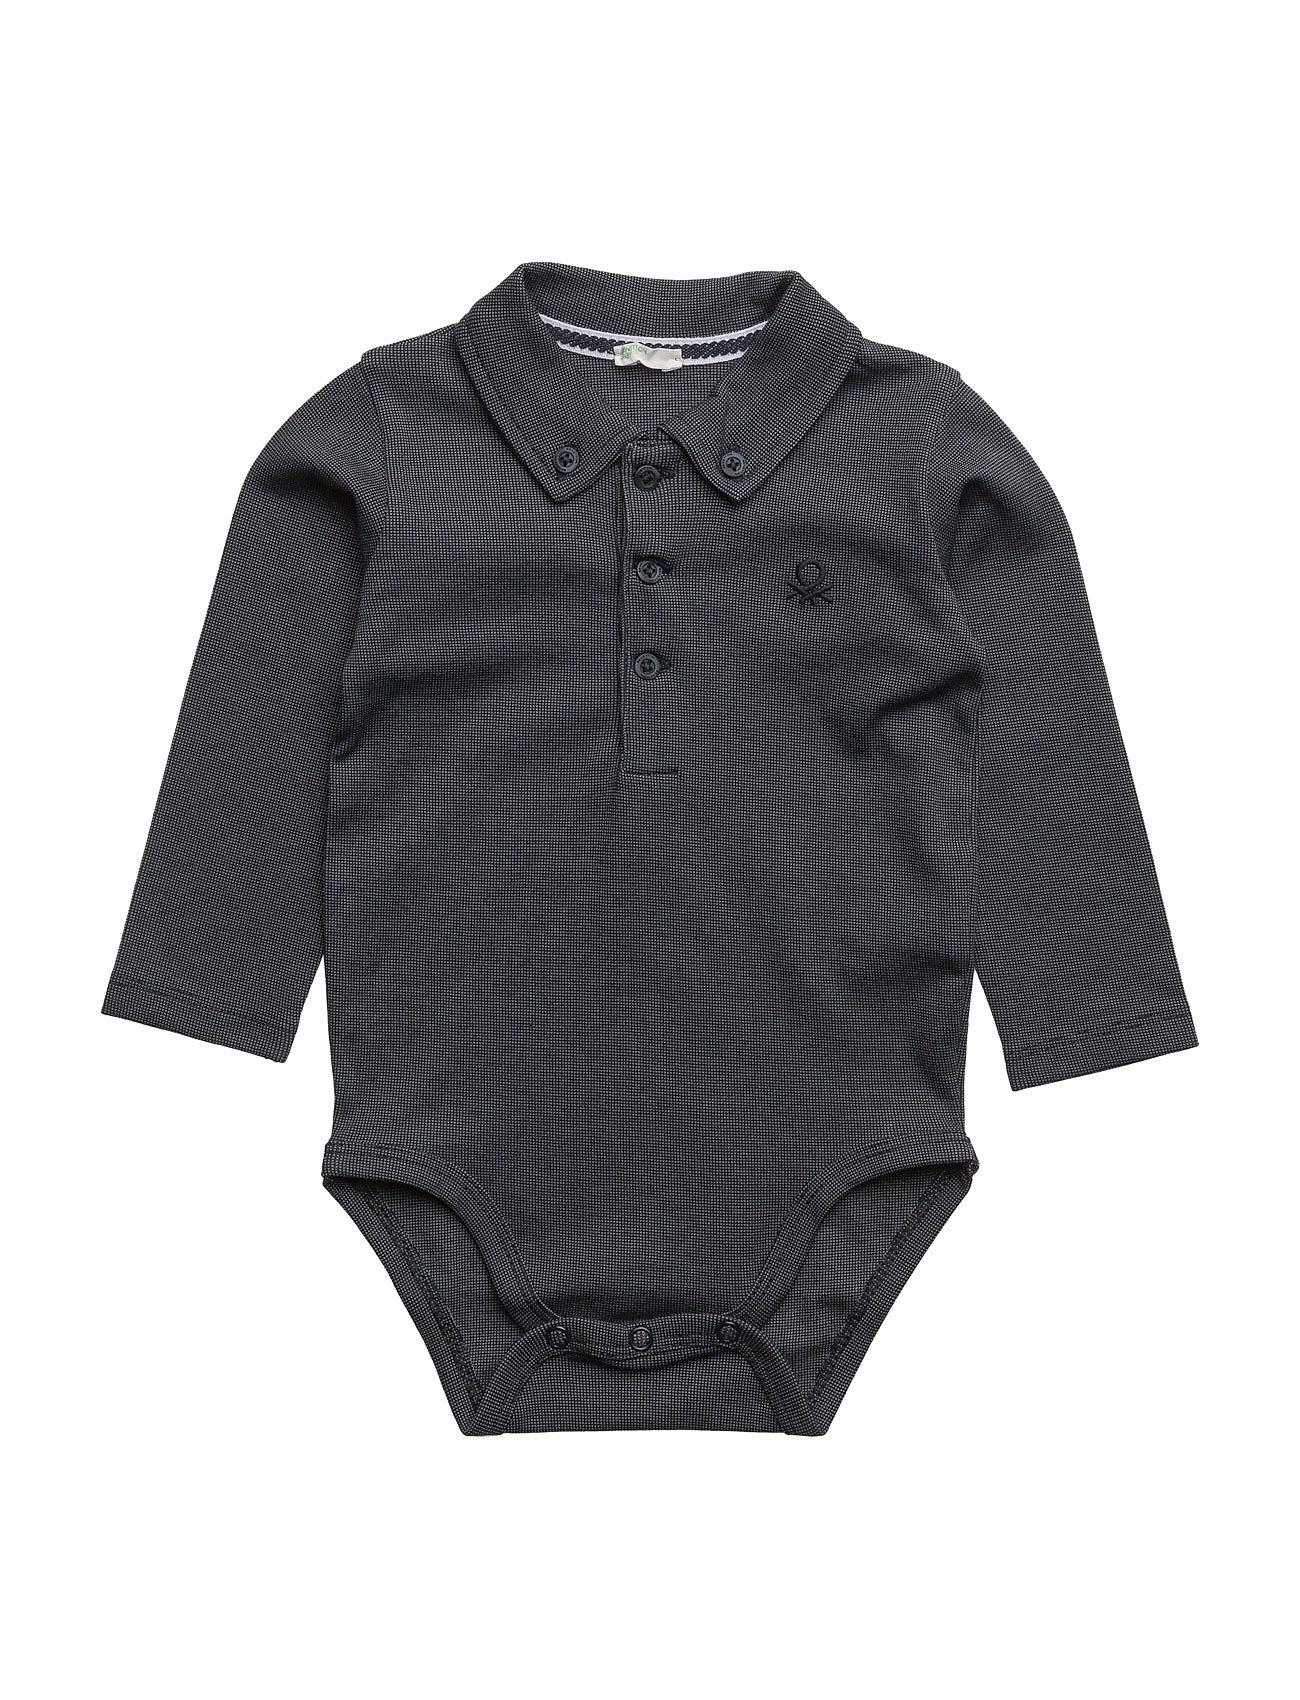 united colors of benetton – Bodysuit l/s på boozt.com dk